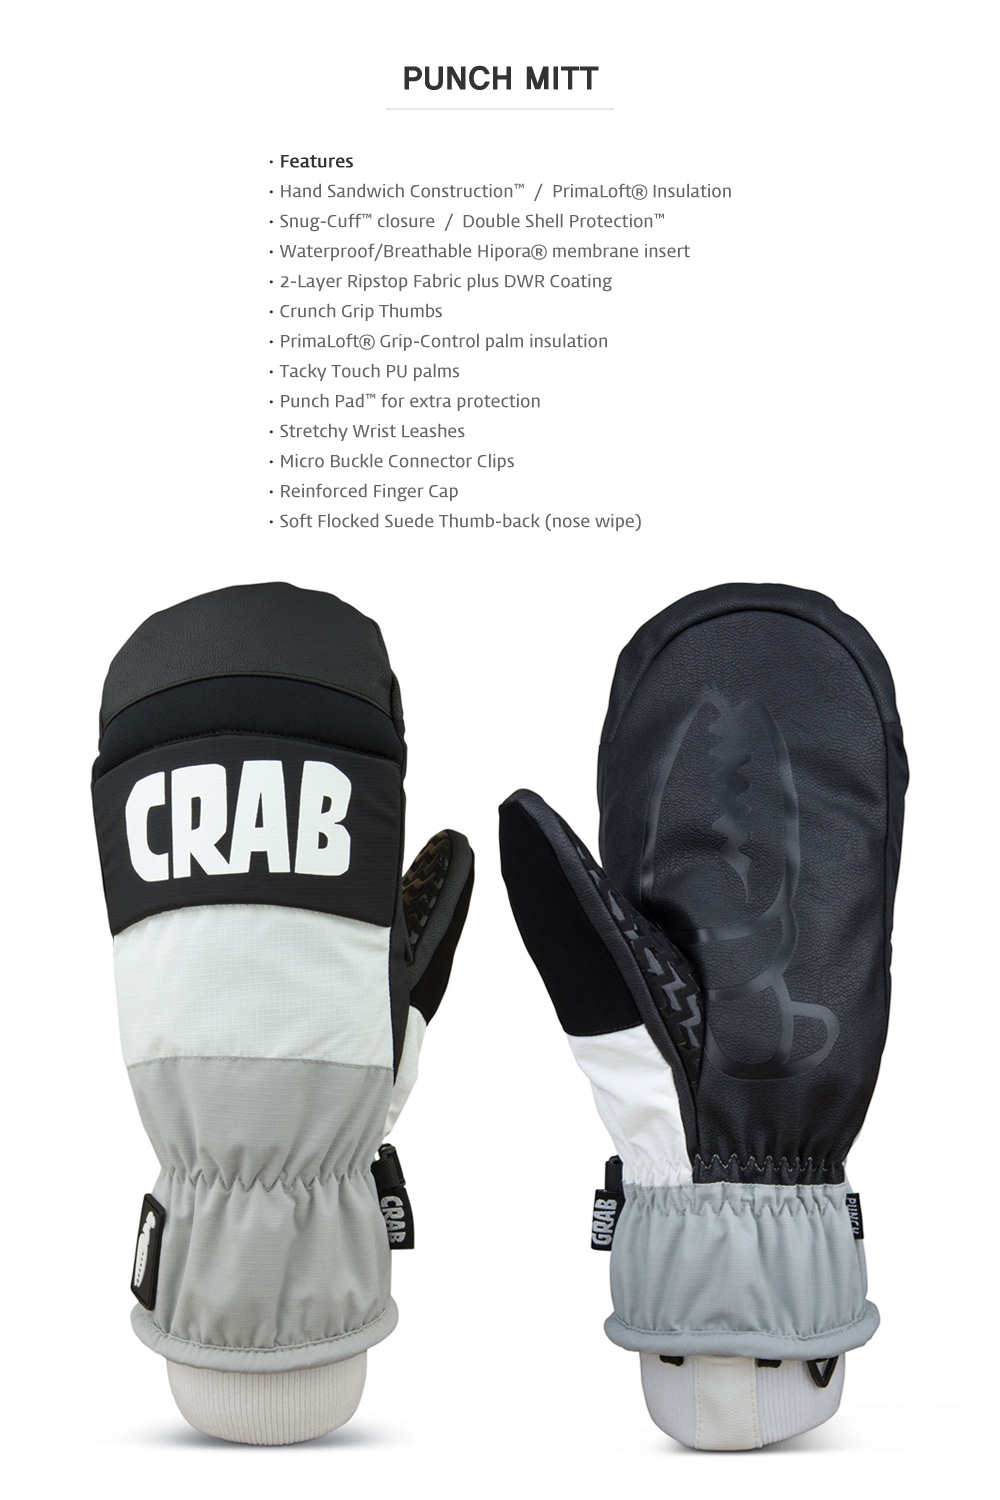 crabgrab_mitt_punch_grey_d1.jpg